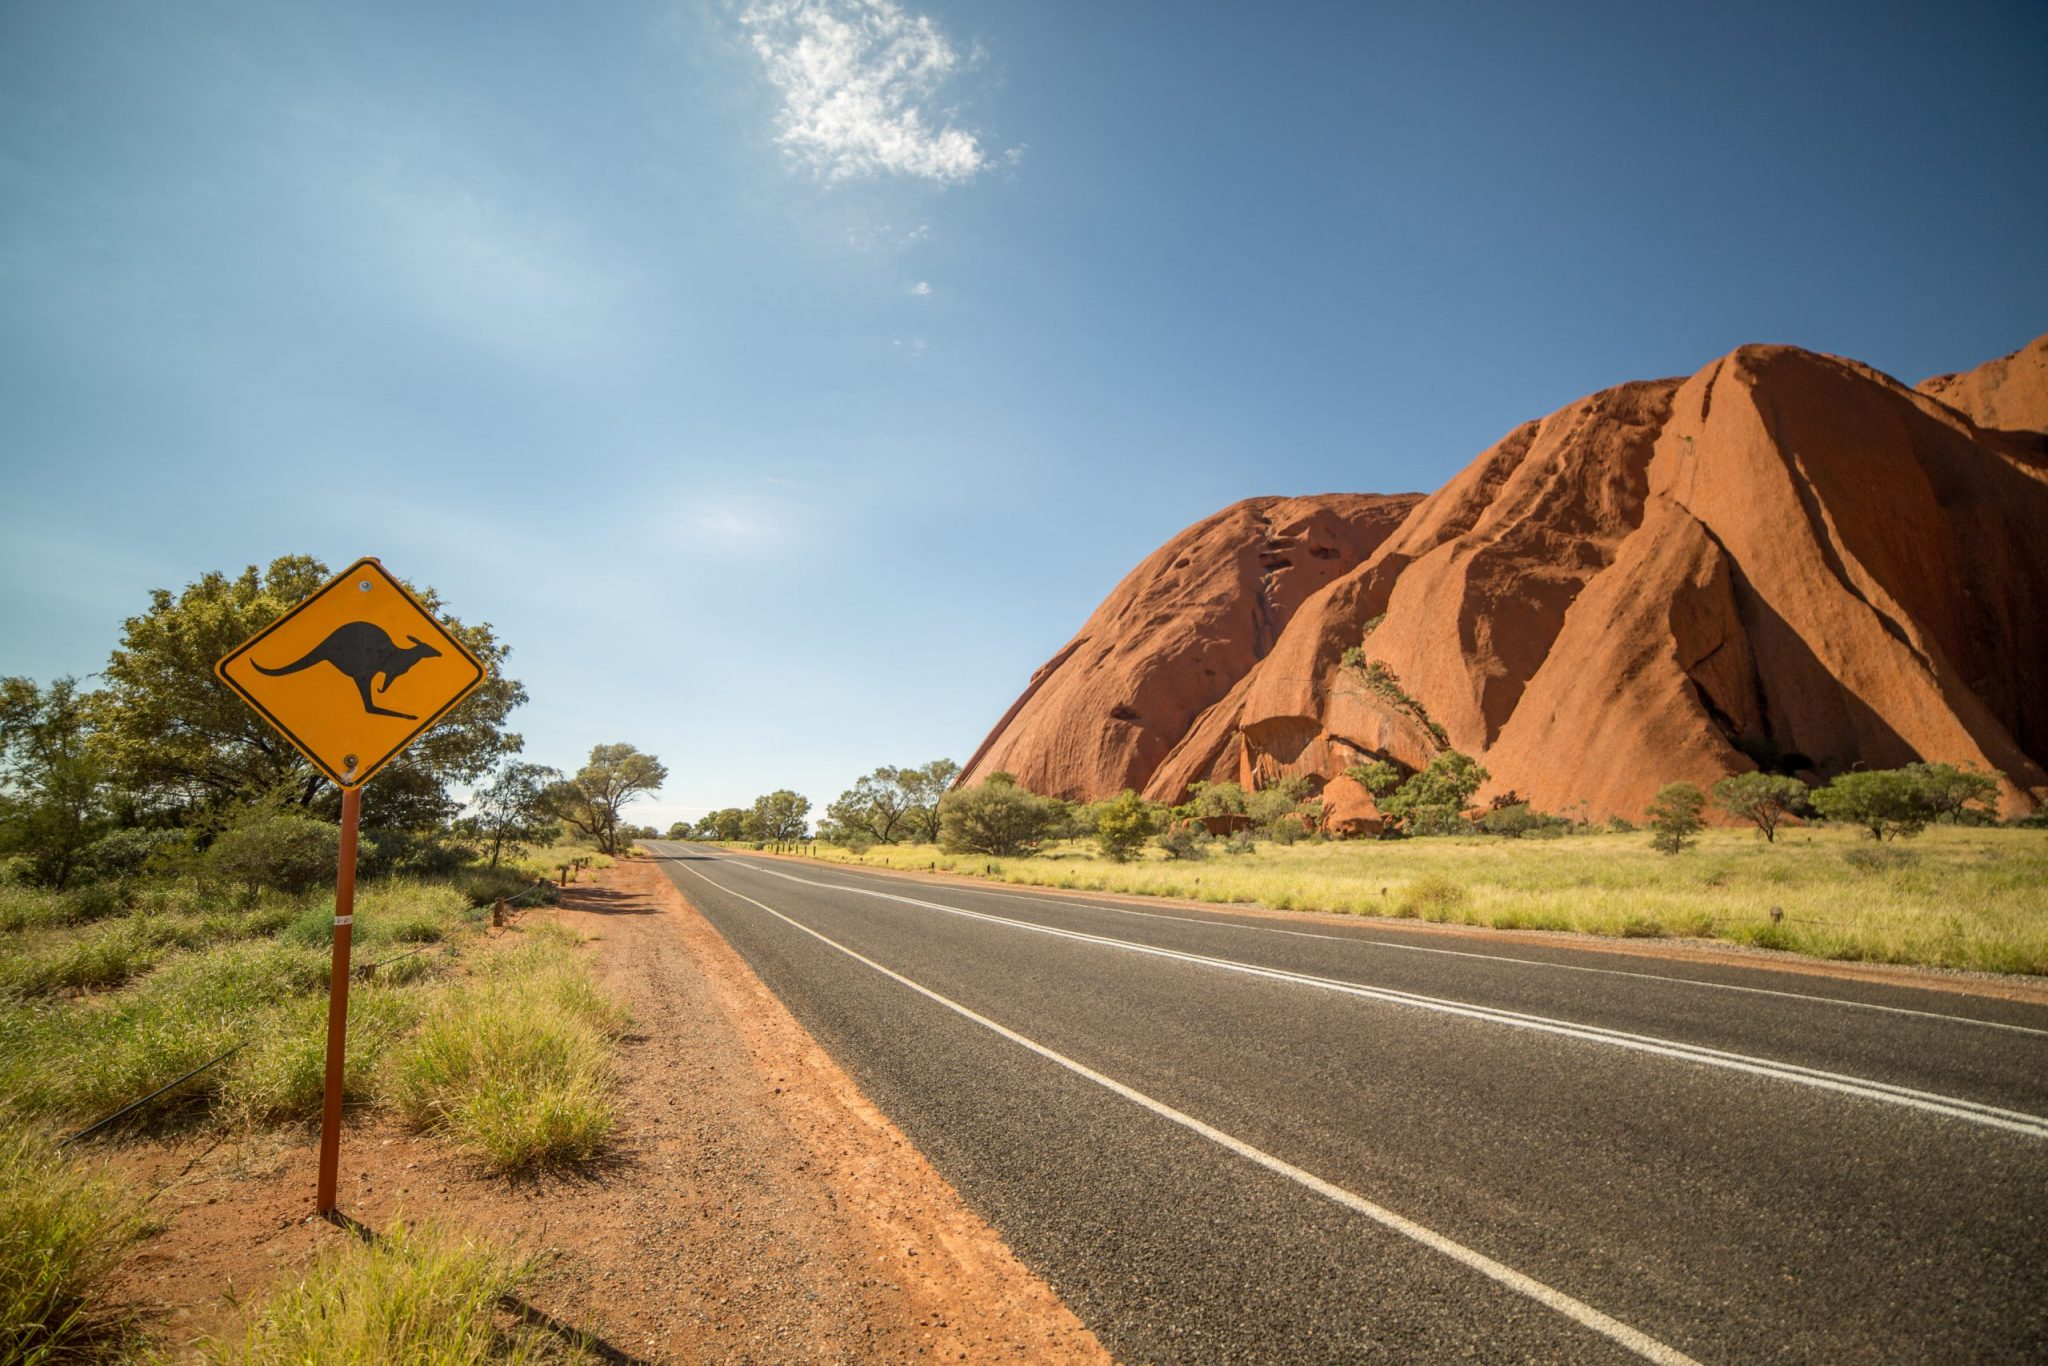 Kangaroo warning sign in the outback, Australia